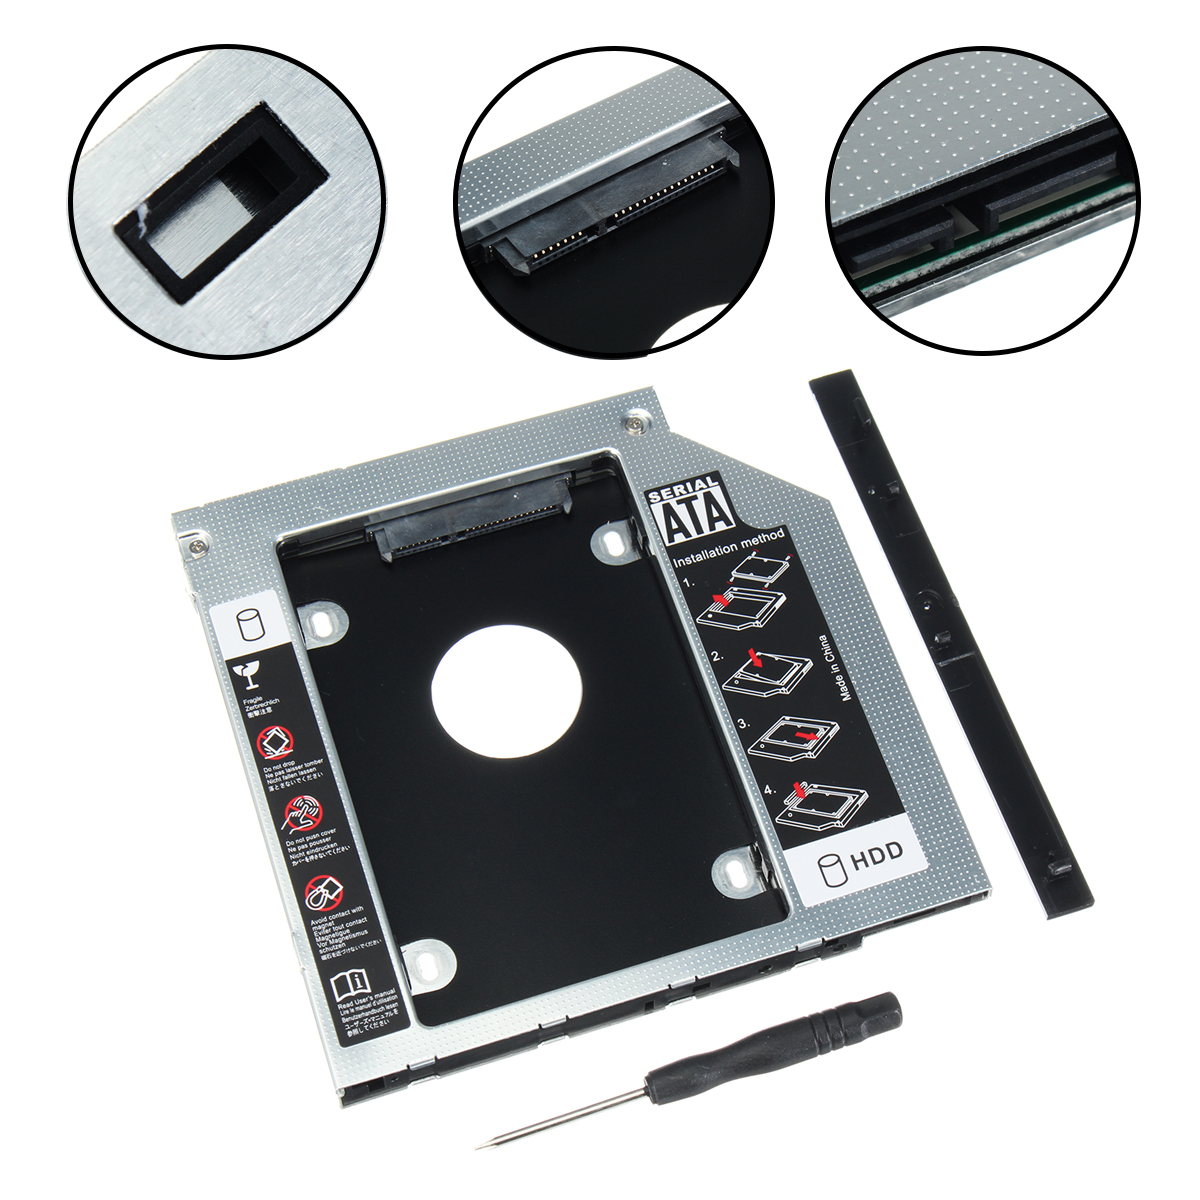 12.7mm Universal SATA 2nd HDD Caddy SSD Hard Drive+Panel for DVD-ROM Optical Bay